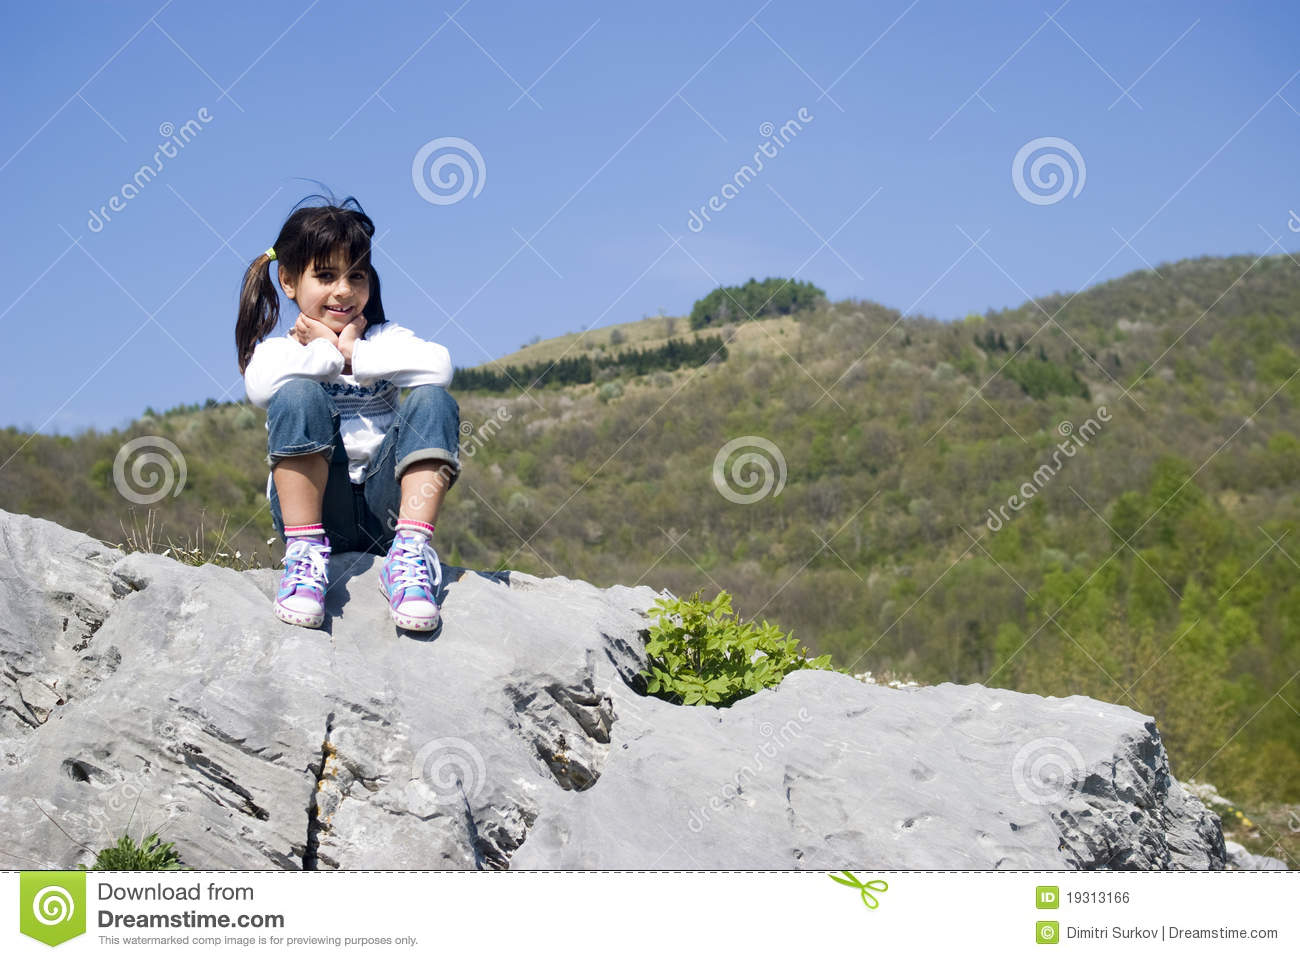 Attended the Girl sitting on rock butt